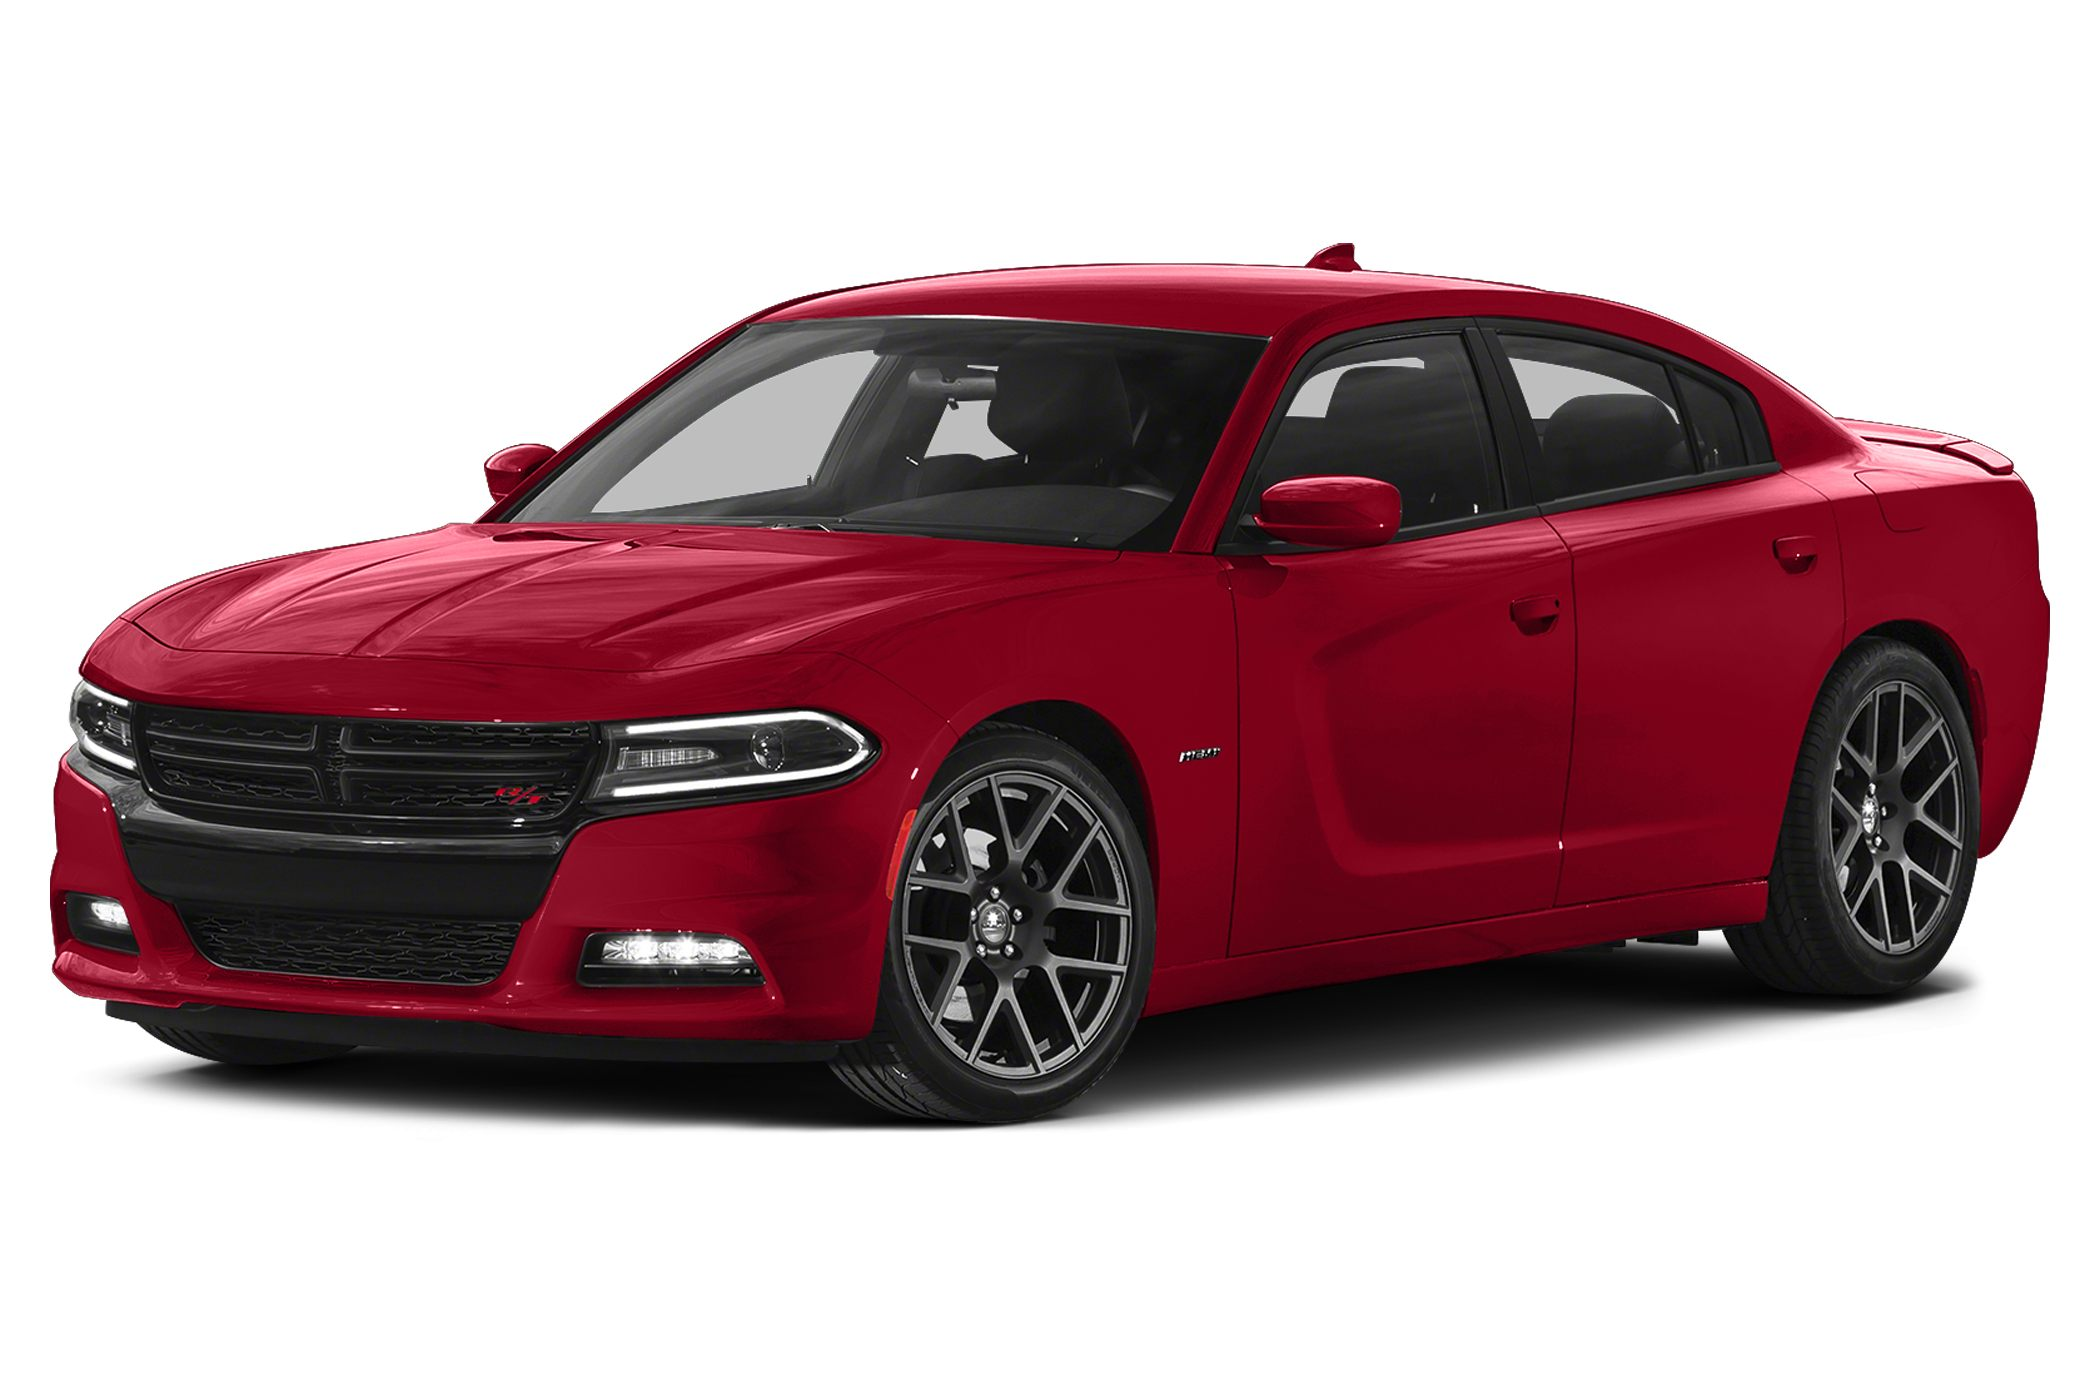 2015 Dodge Charger SXT Sedan for sale in Houston for $3,480 with 0 miles